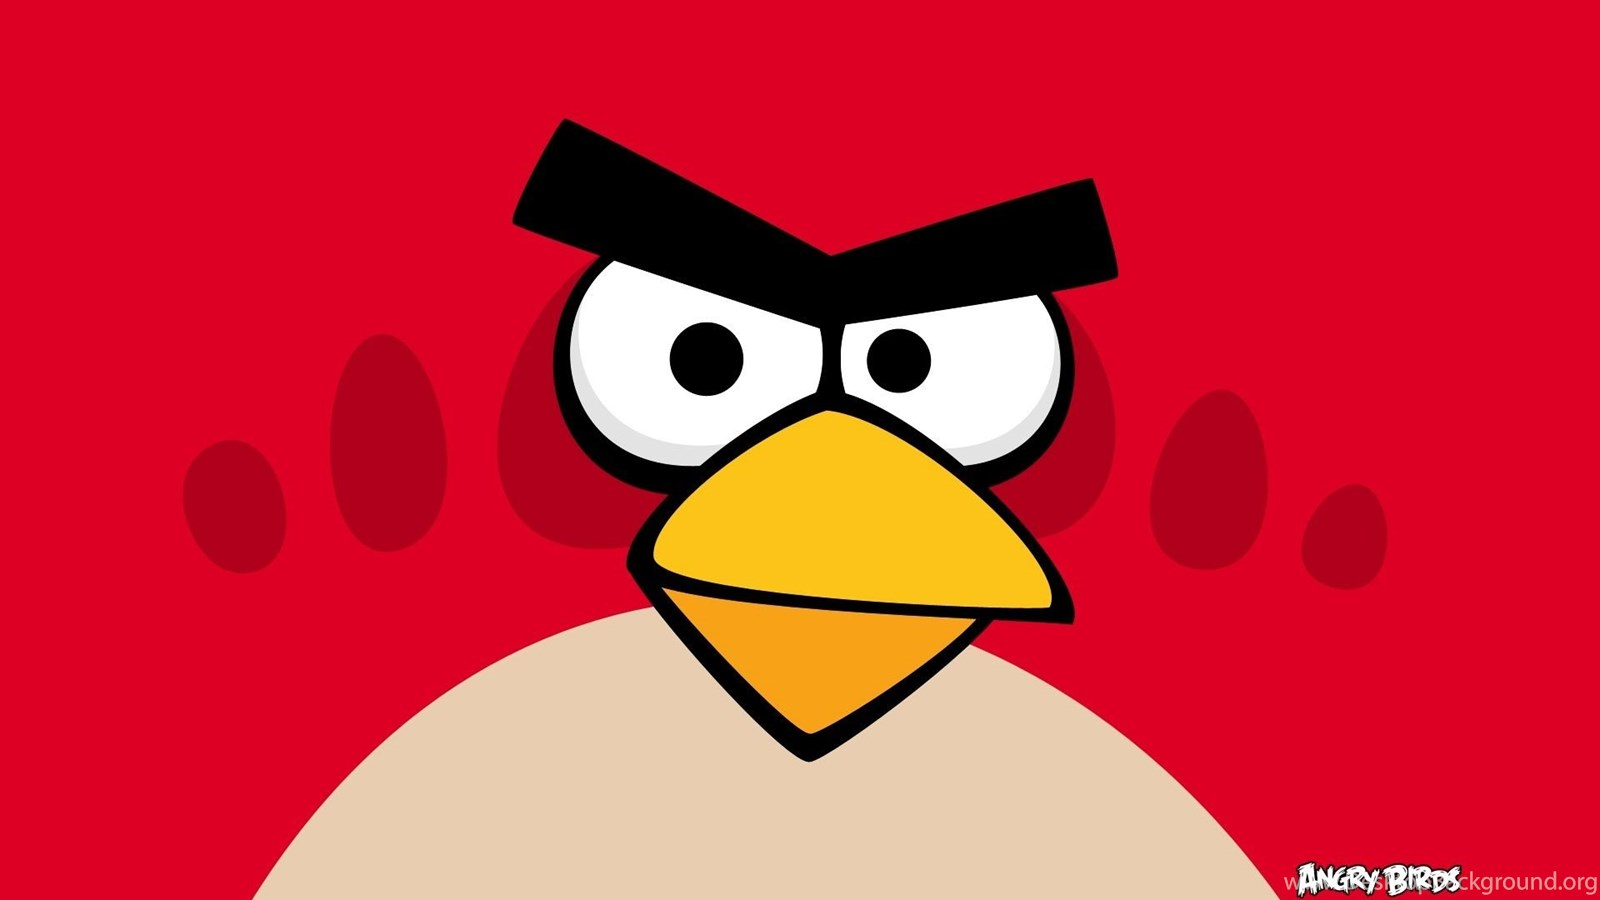 Angry Birds Red Wallpaper.jpg